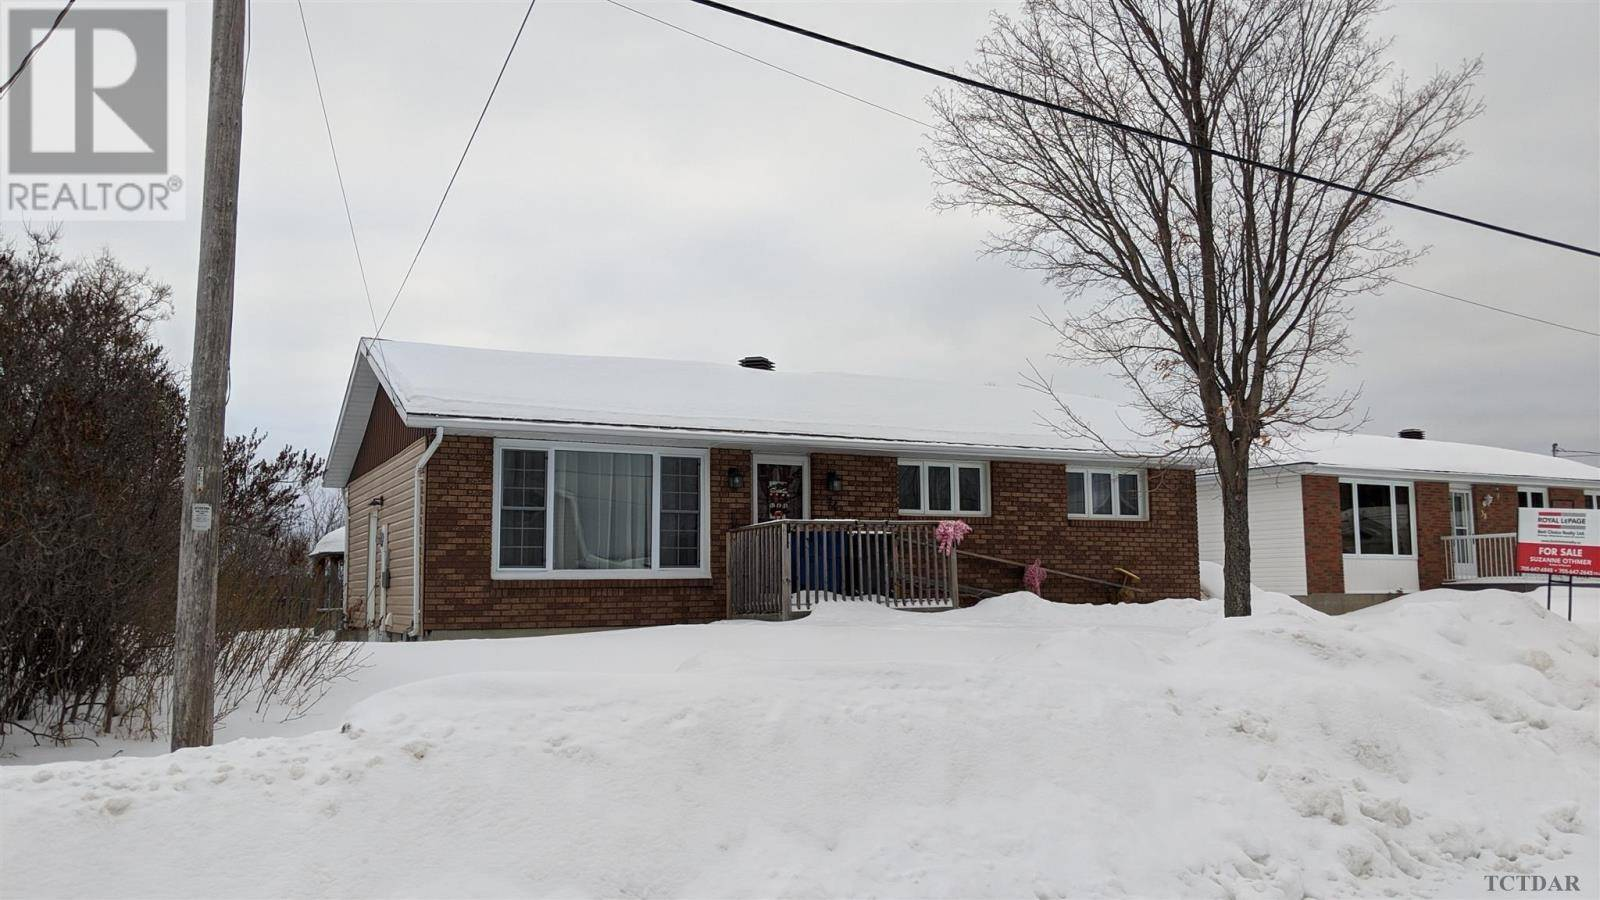 House for sale at 44 Maple St S Temiskaming Shores Ontario - MLS: TM200091